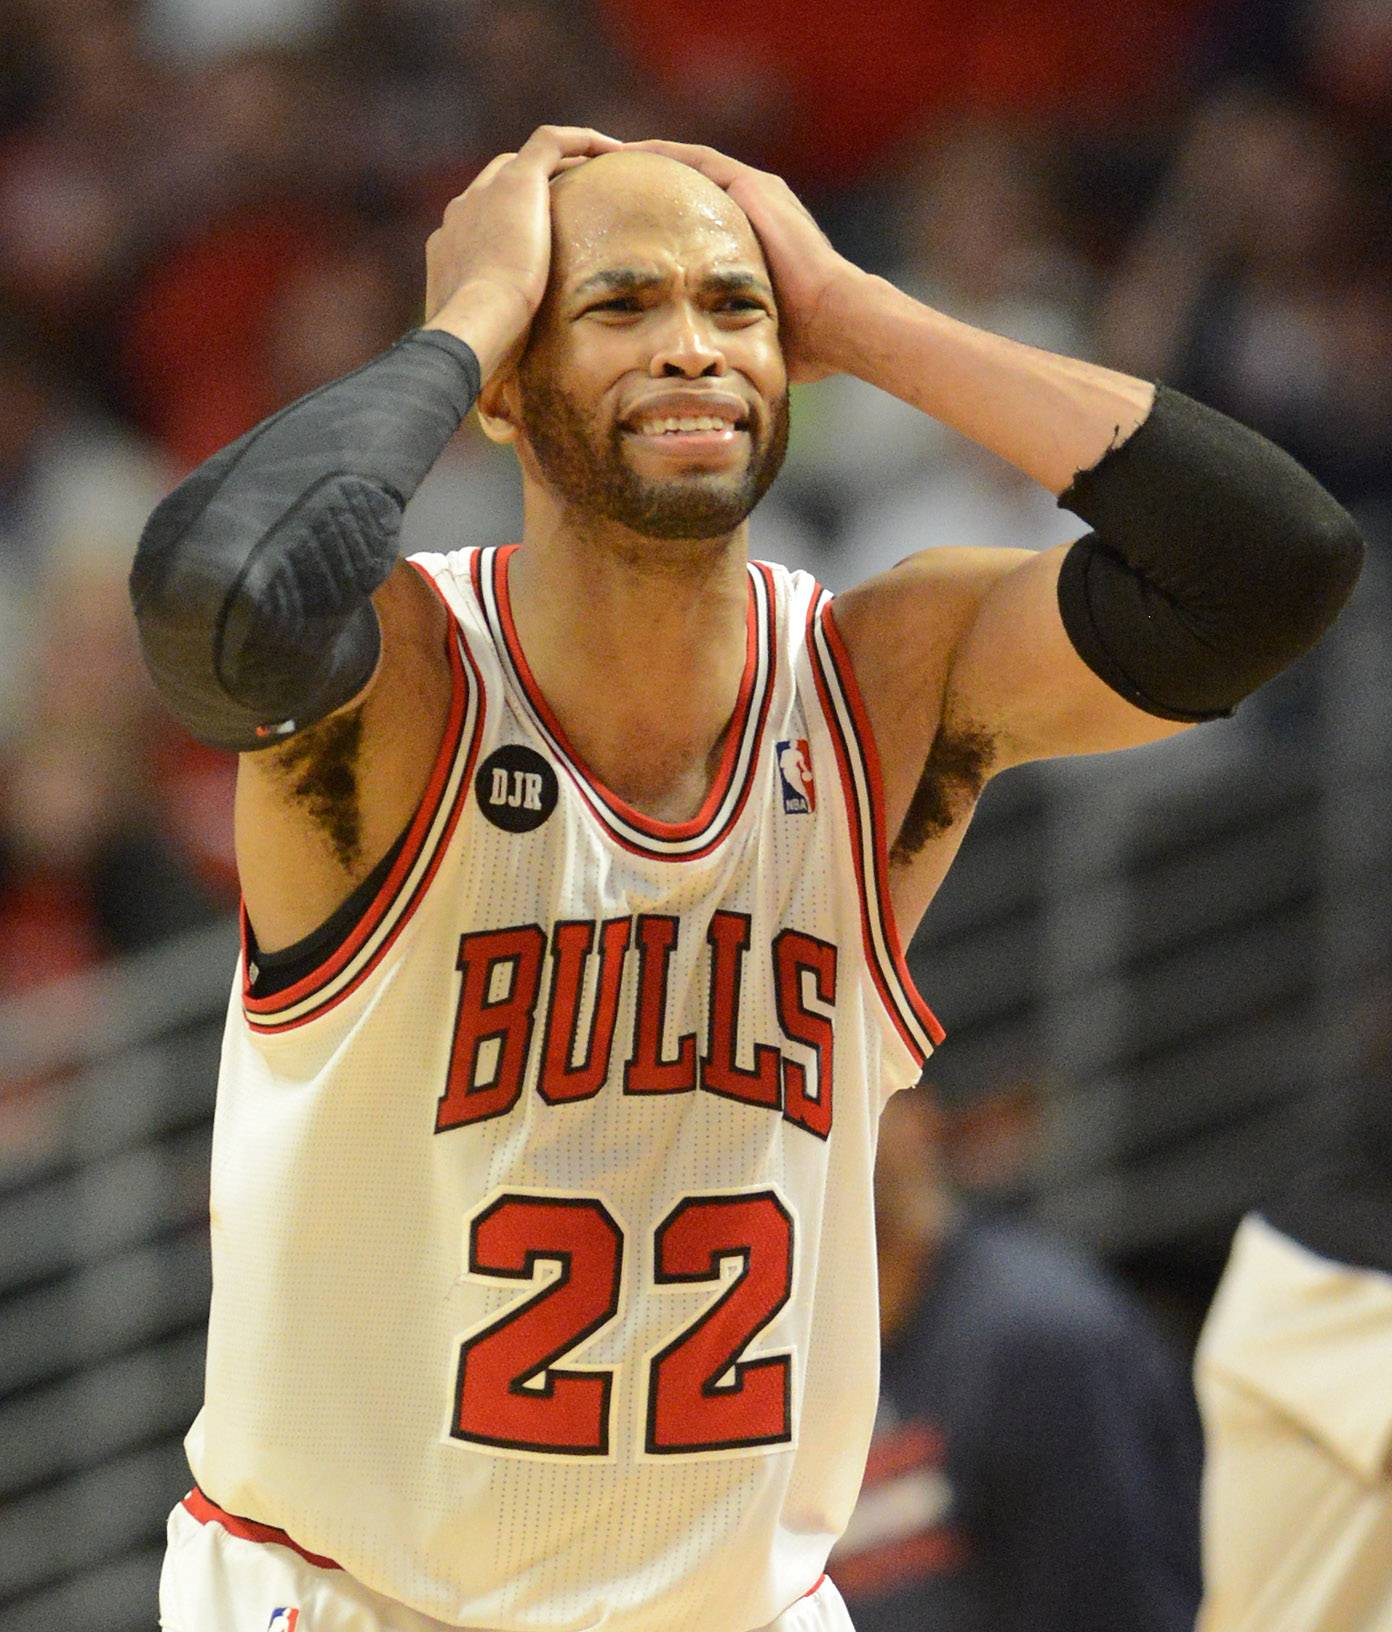 Chicago Bulls forward Taj Gibson reacts as things start going the Wizards' way during last night's game at the United Center in Chicago.